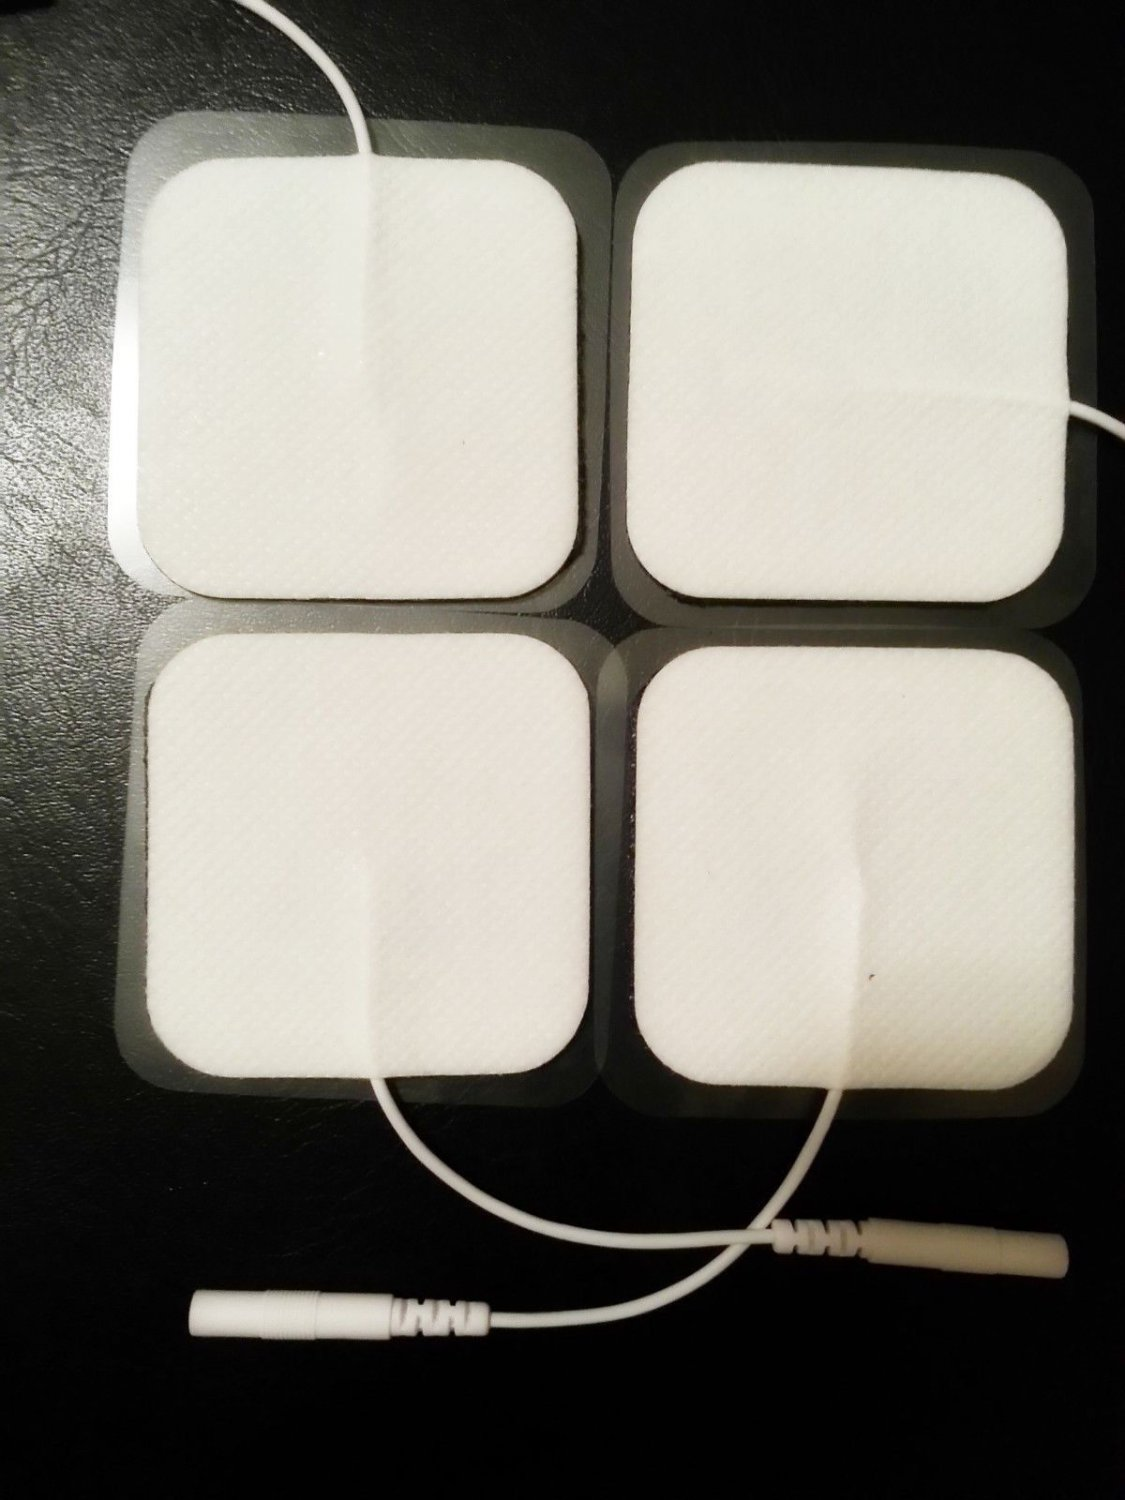 16 PC SQUARE REPLACEMENT ELECTRODE MASSAGE PADS-For MAGIC TOUCH PRO SERIES 103